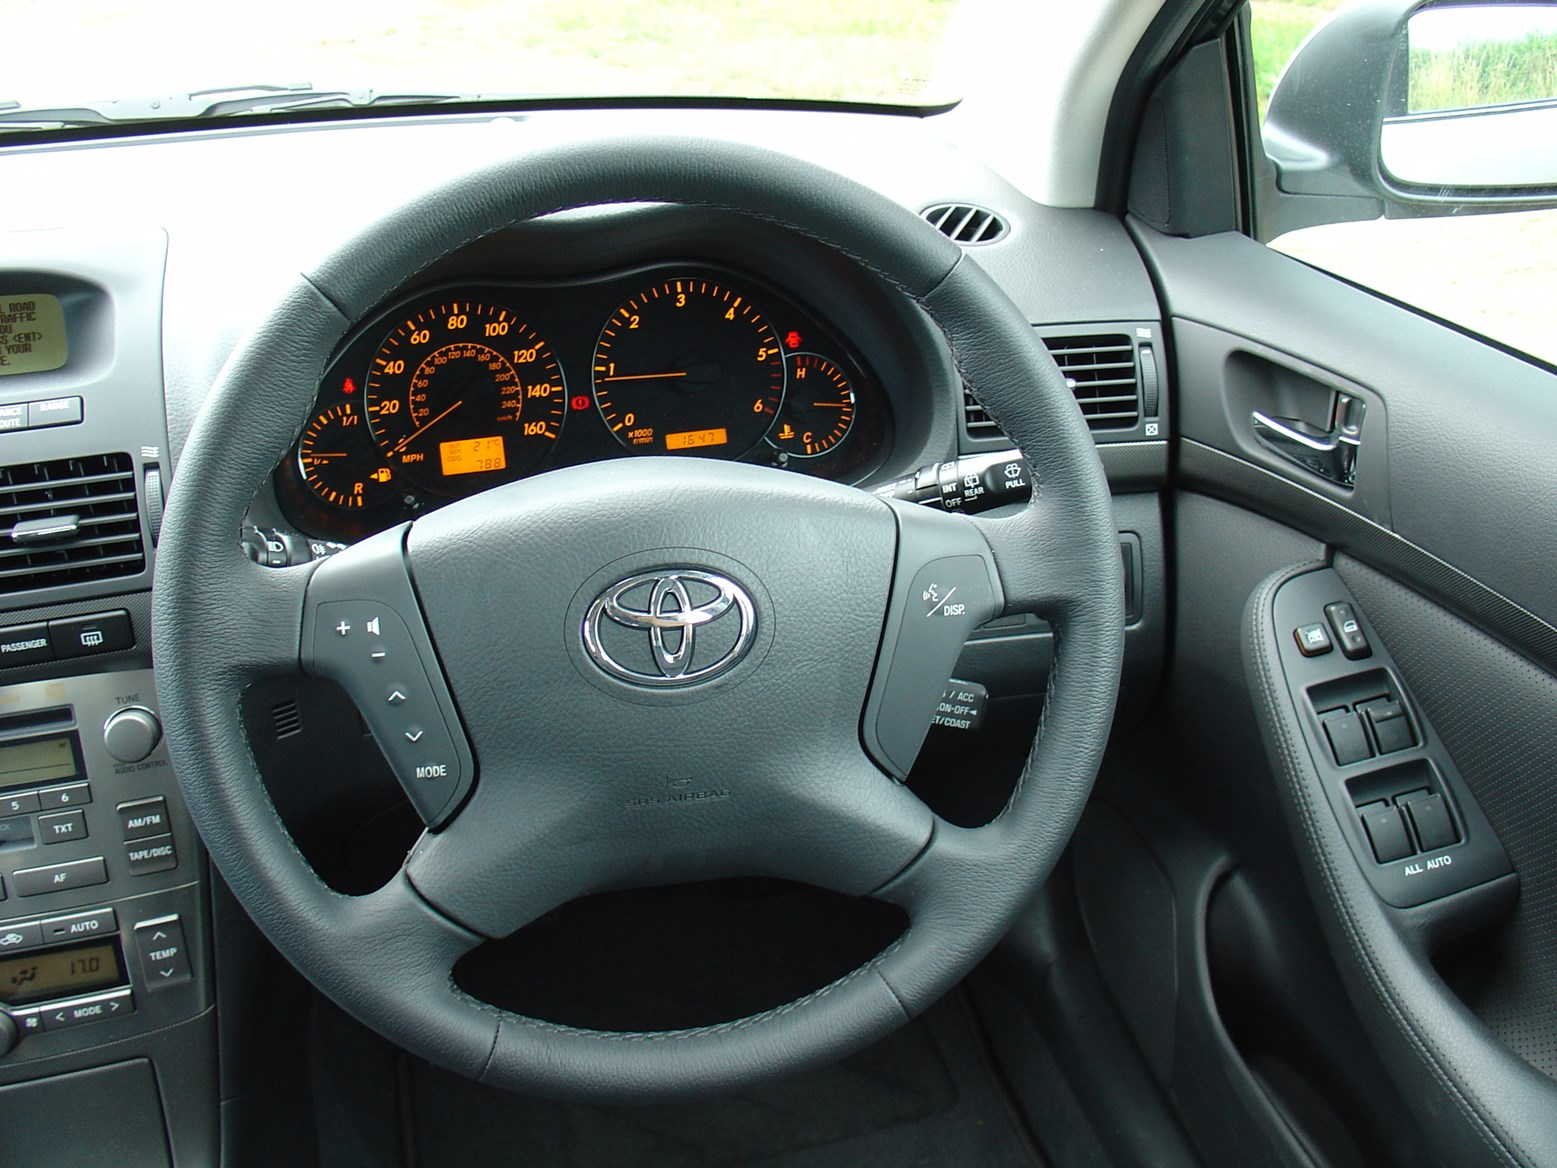 Toyota Avensis (2007) - pictures, information &amp- specs